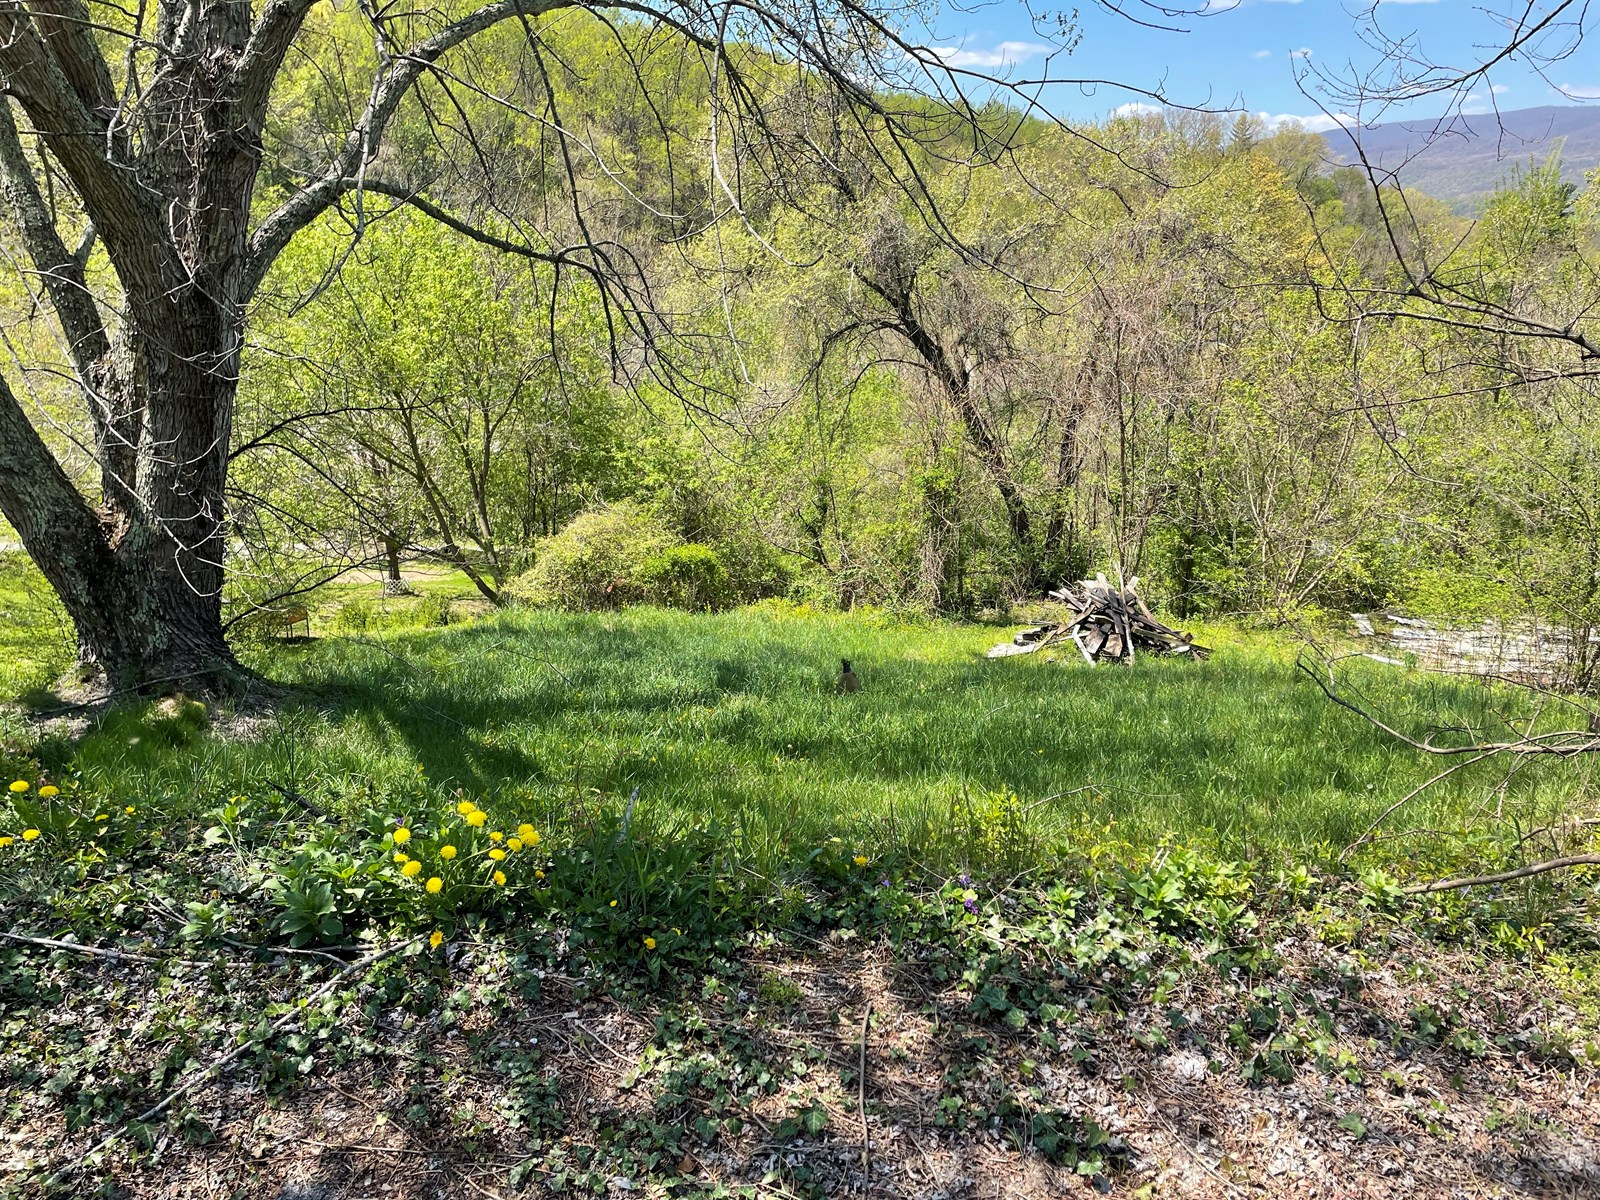 Building Lot for Sale in Giles County VA